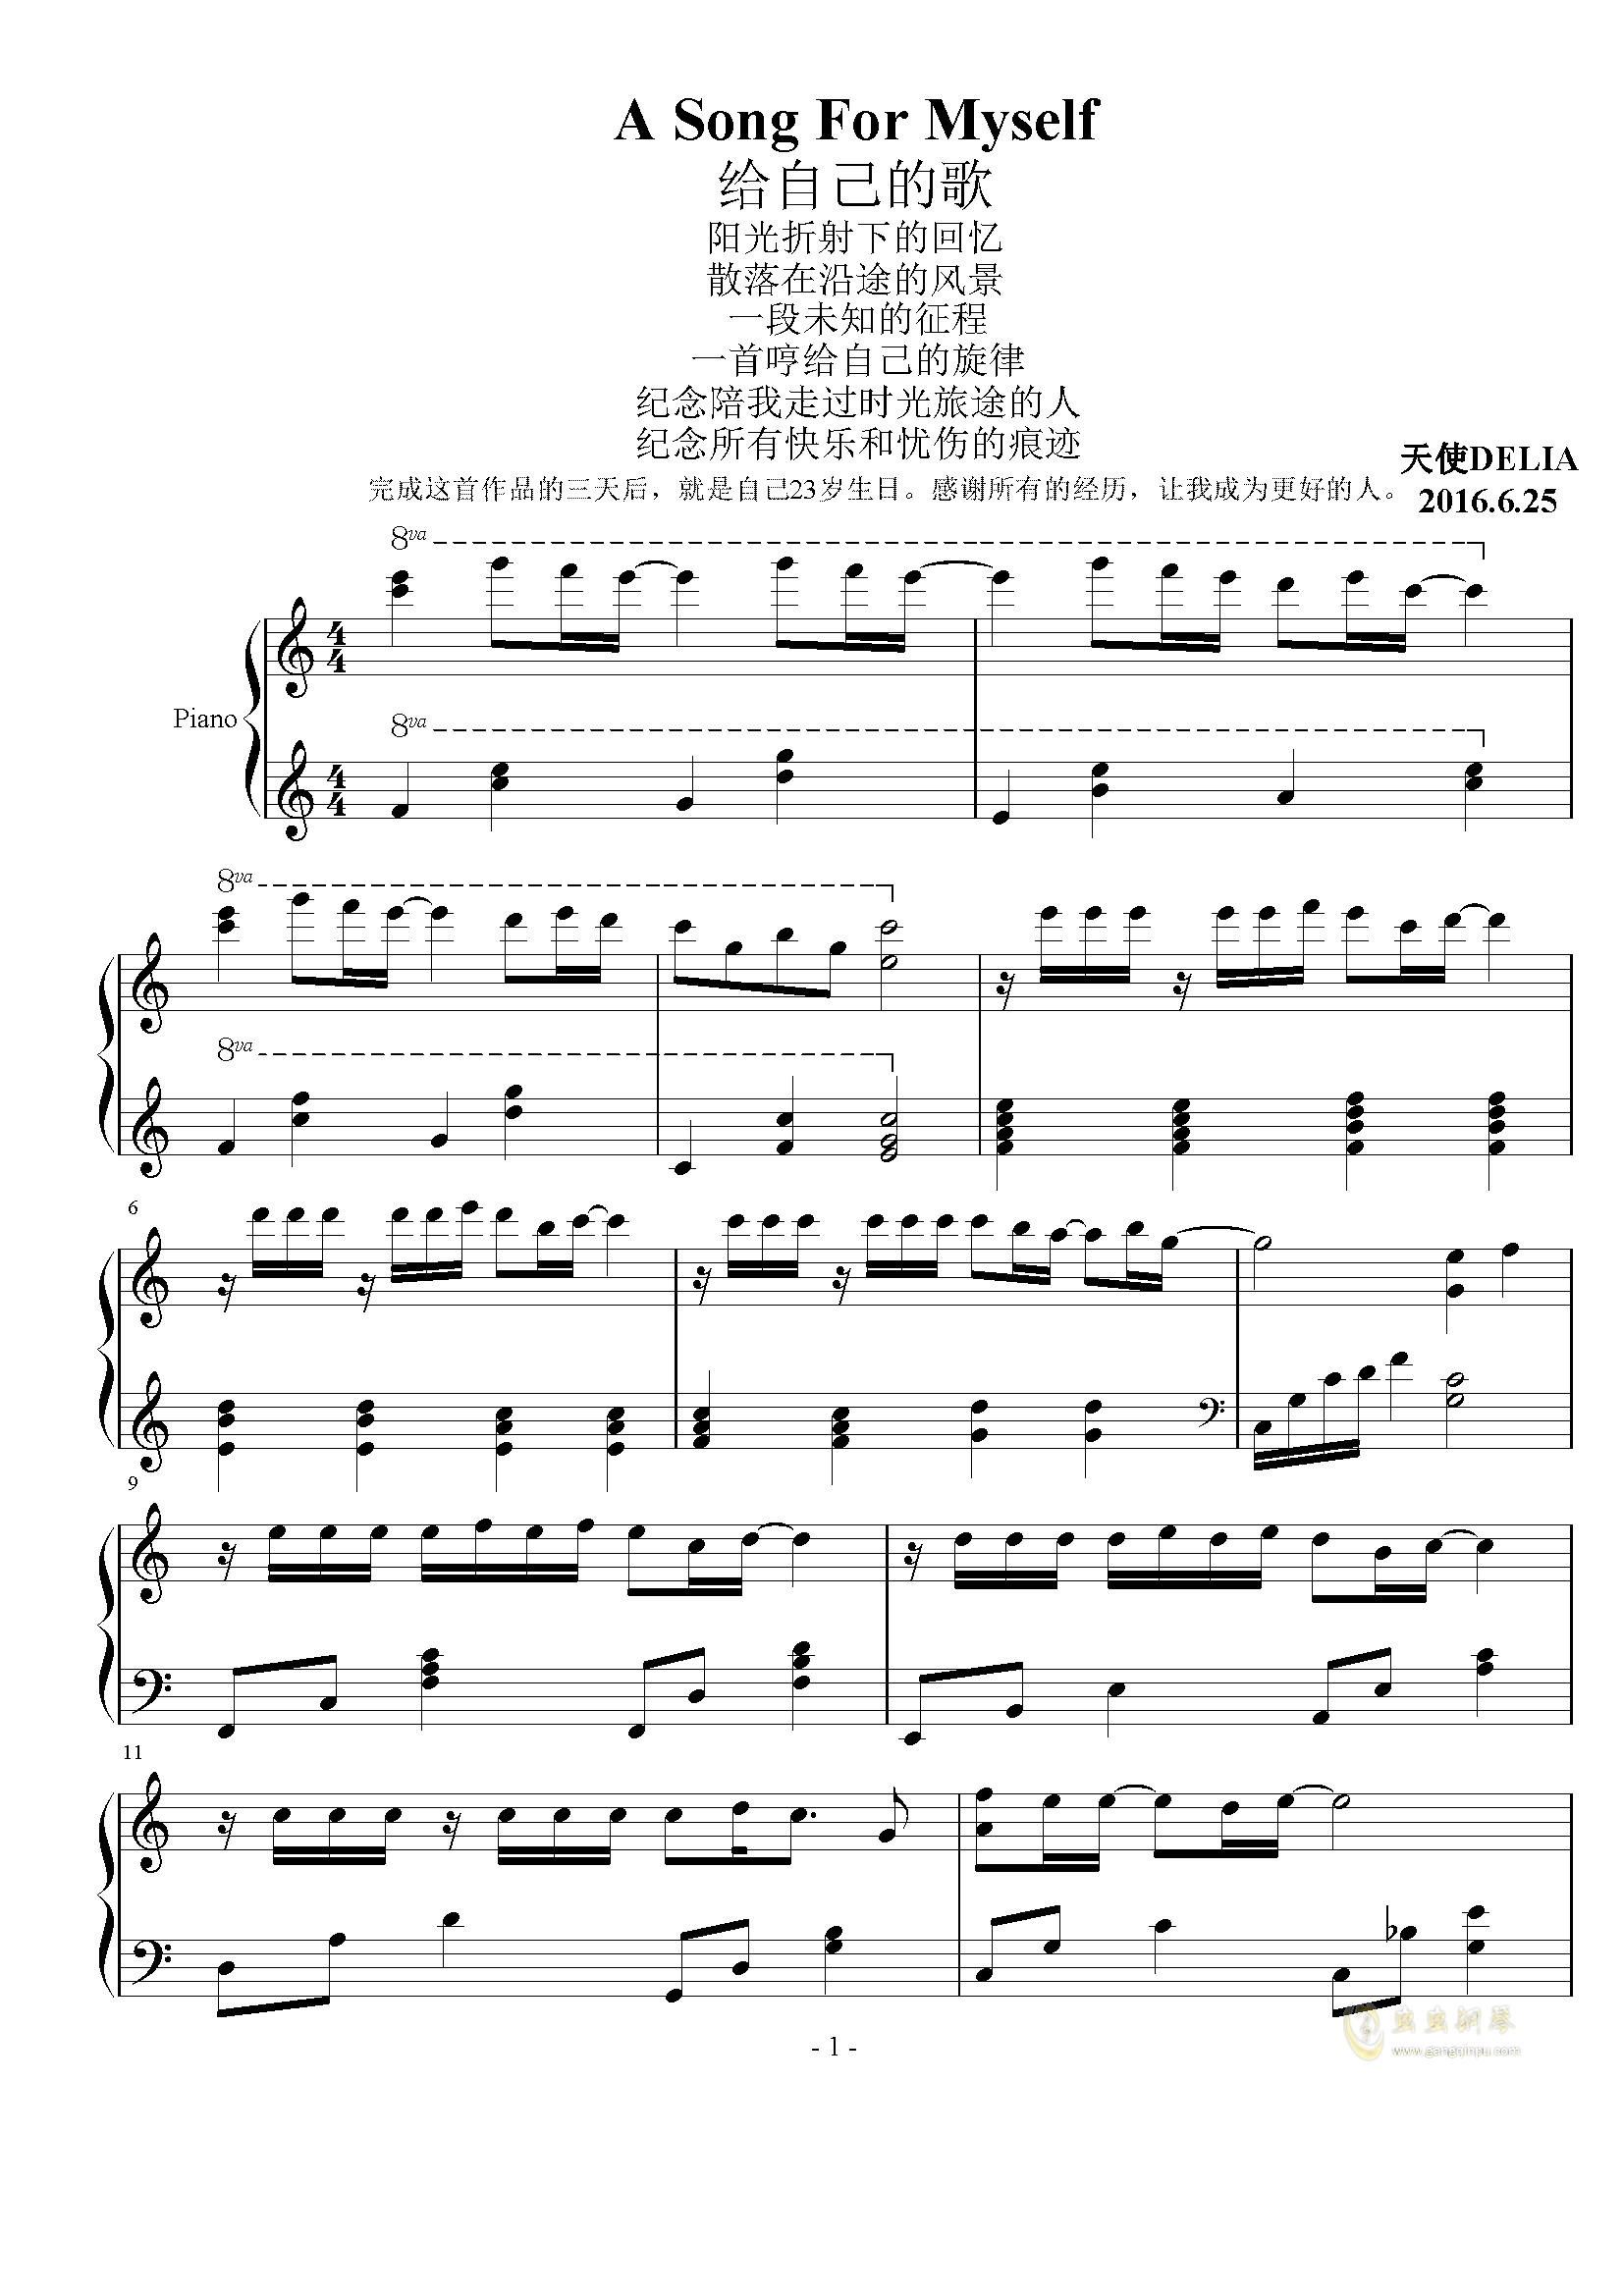 A Song For Myself 给自己的歌